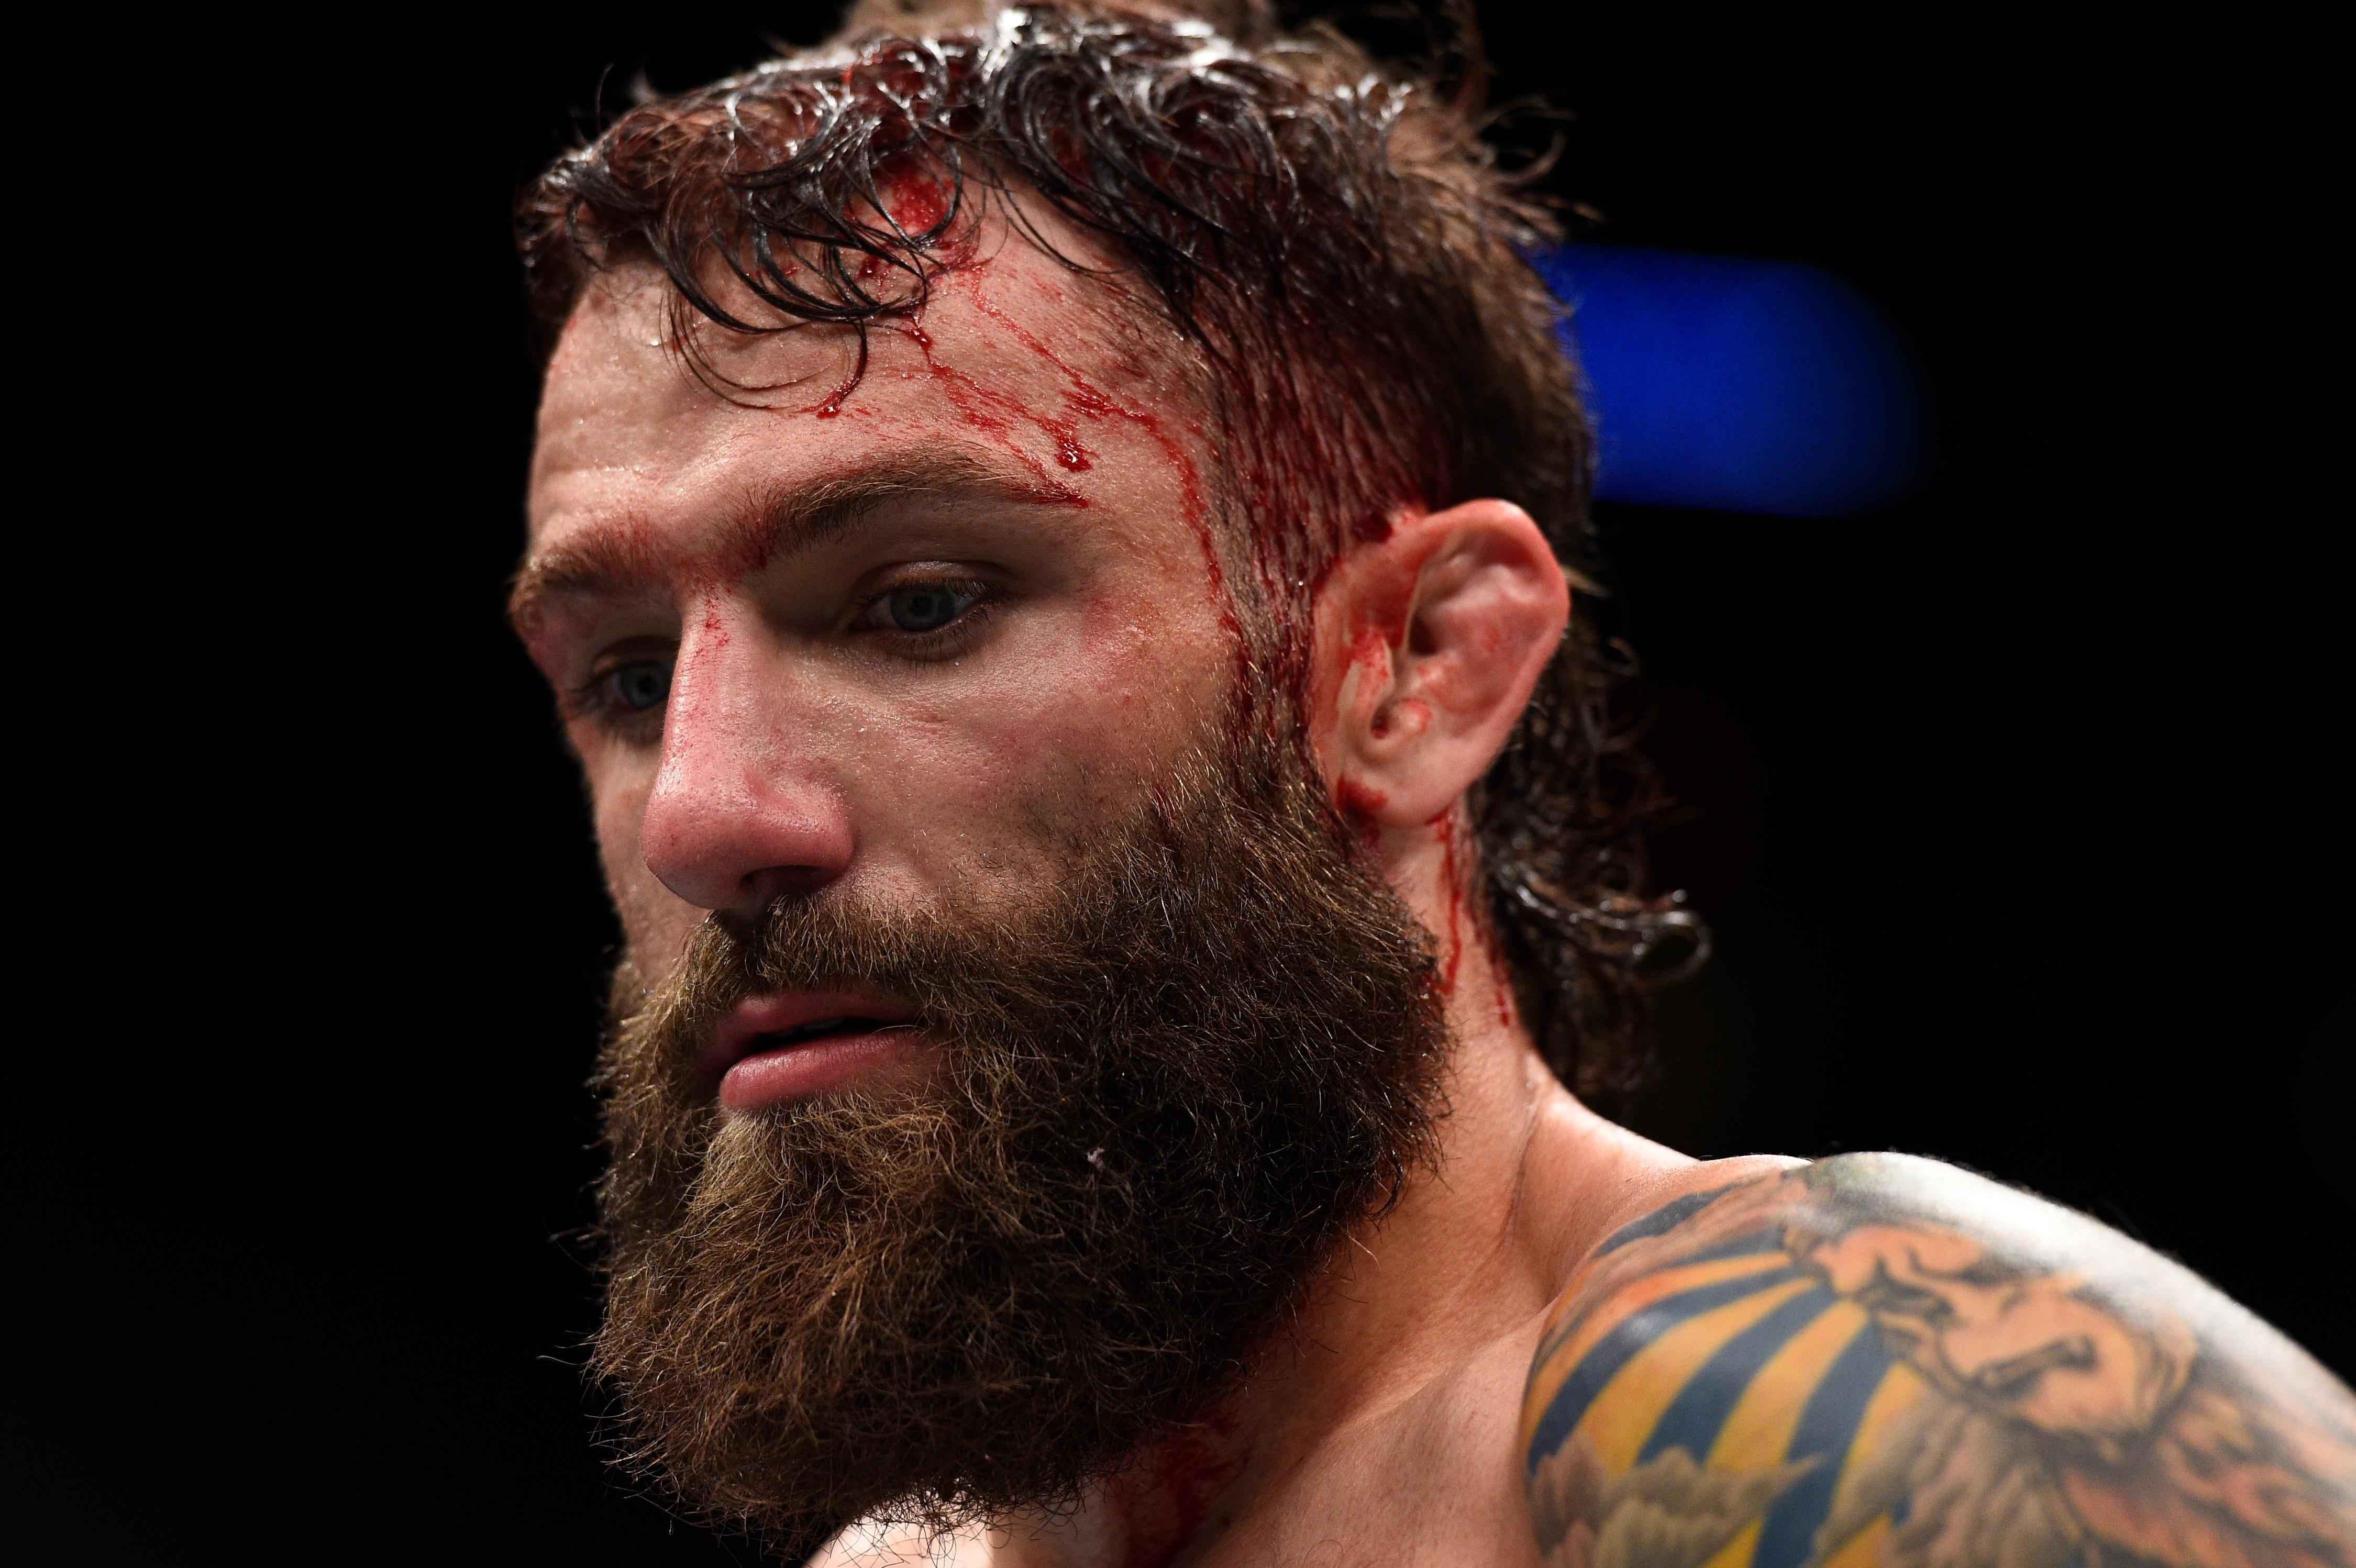 Michael Chiesa has been pulled from UFC 223 after he sustained cuts to his face